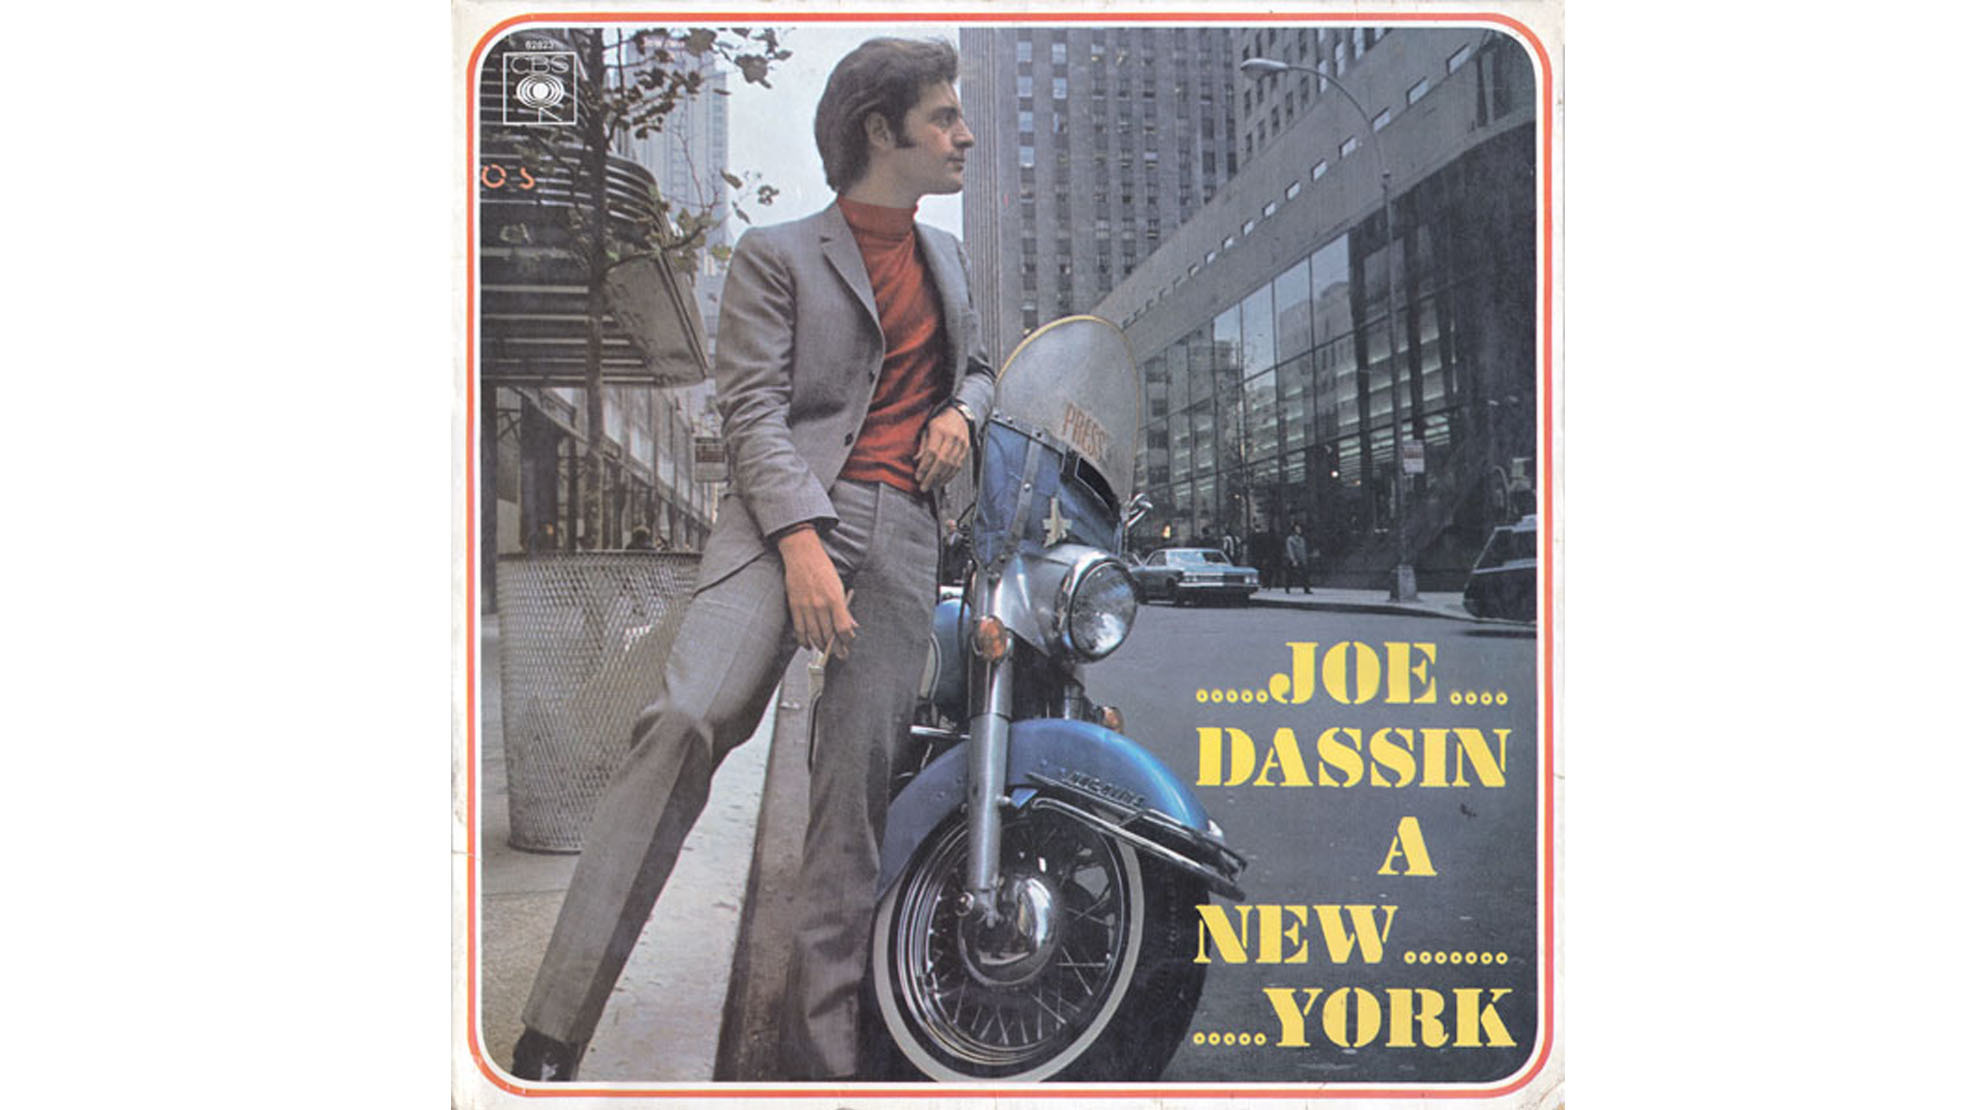 Joe Dassin • A New York (1966)